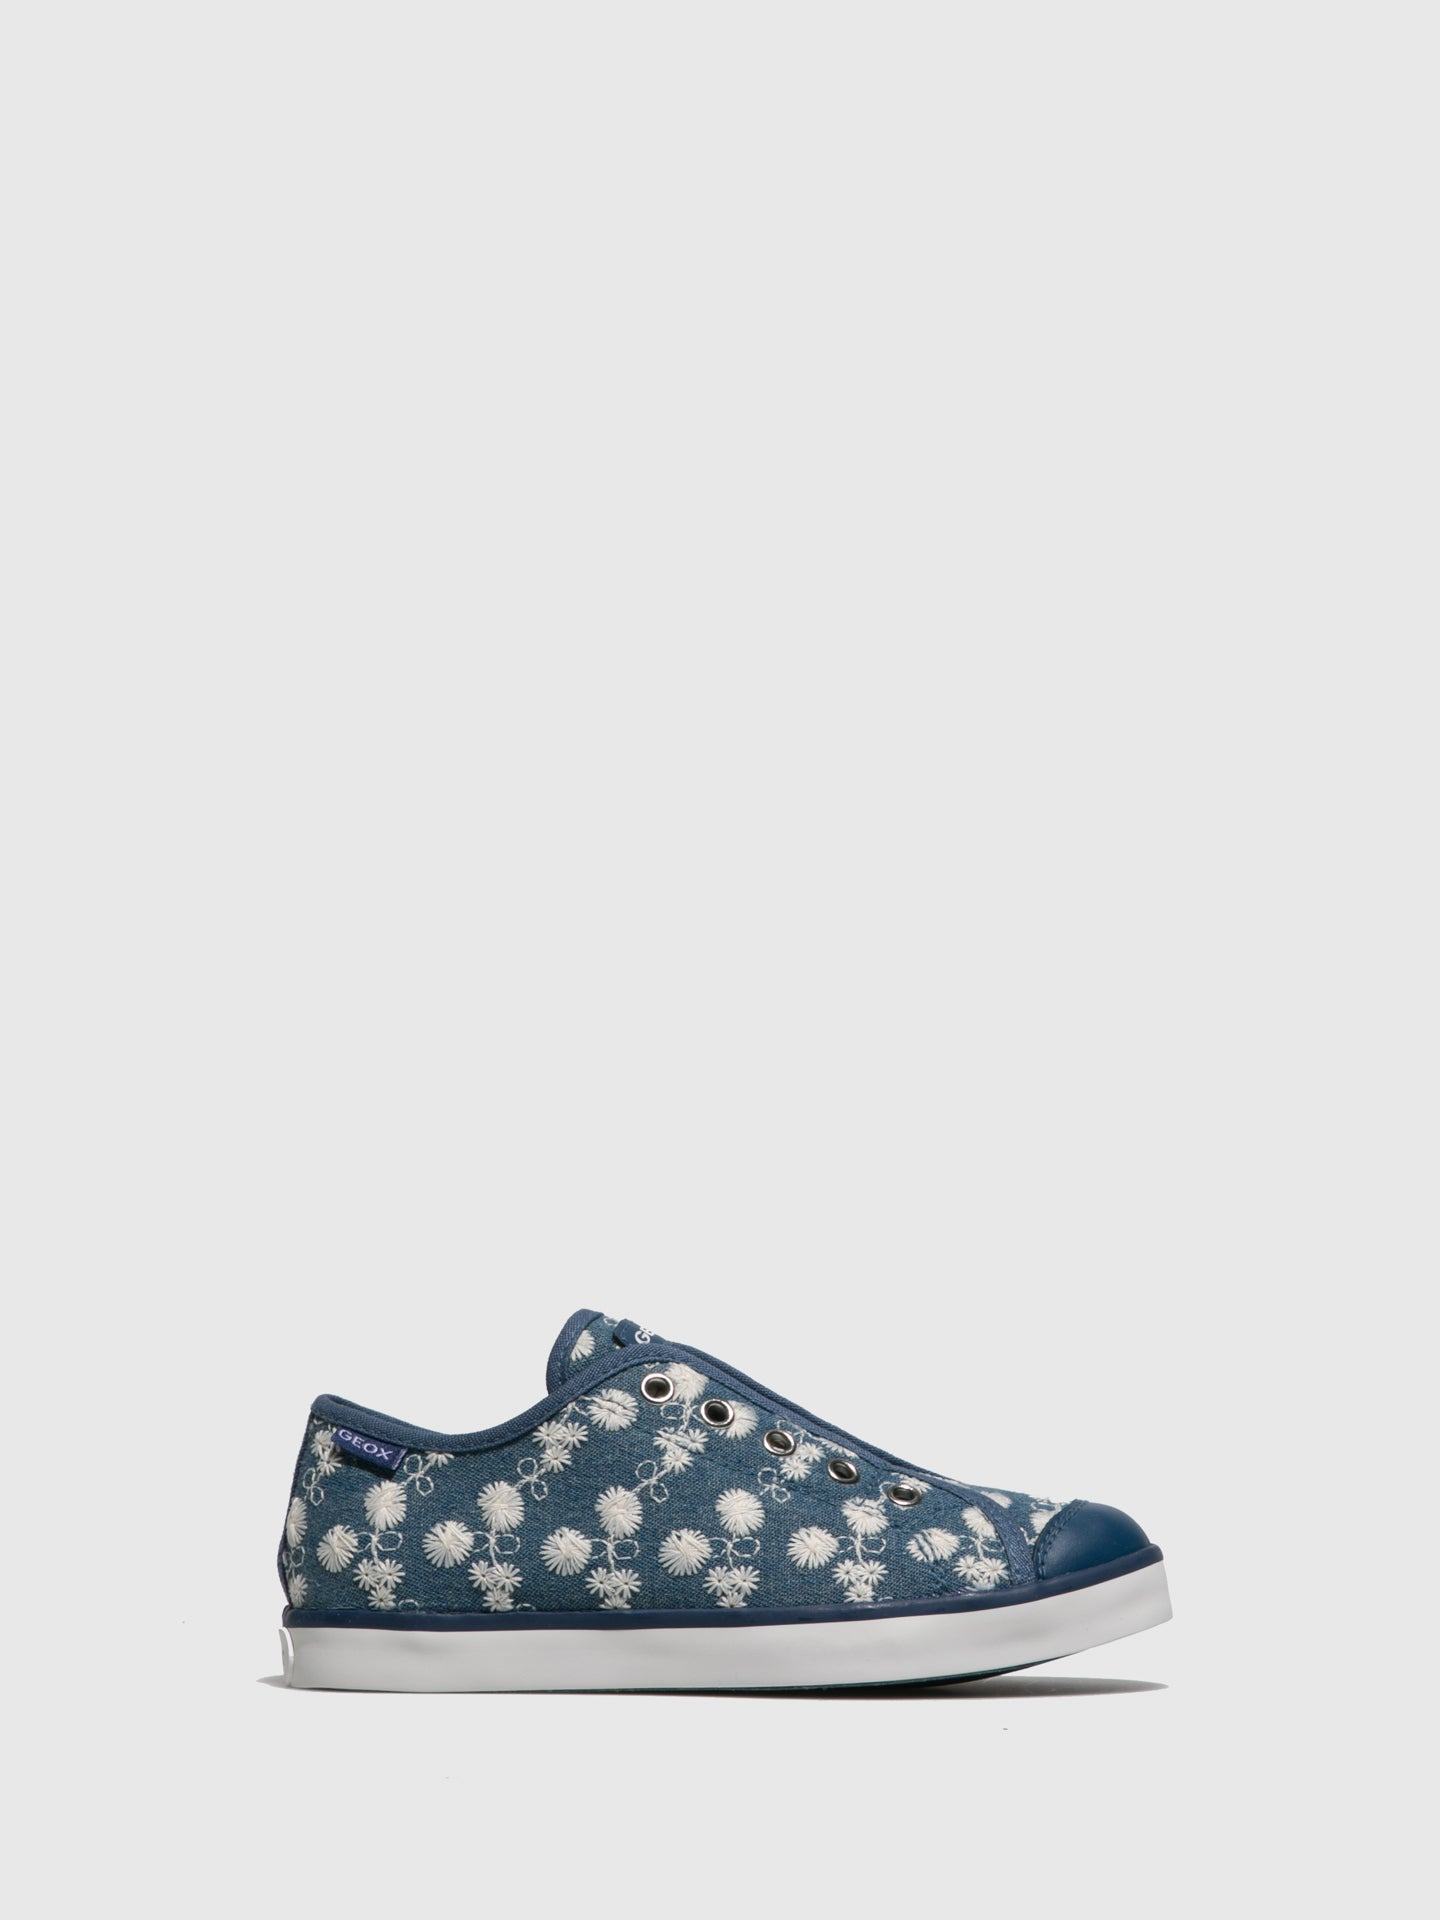 Geox DarkBlue Lace-up Shoes